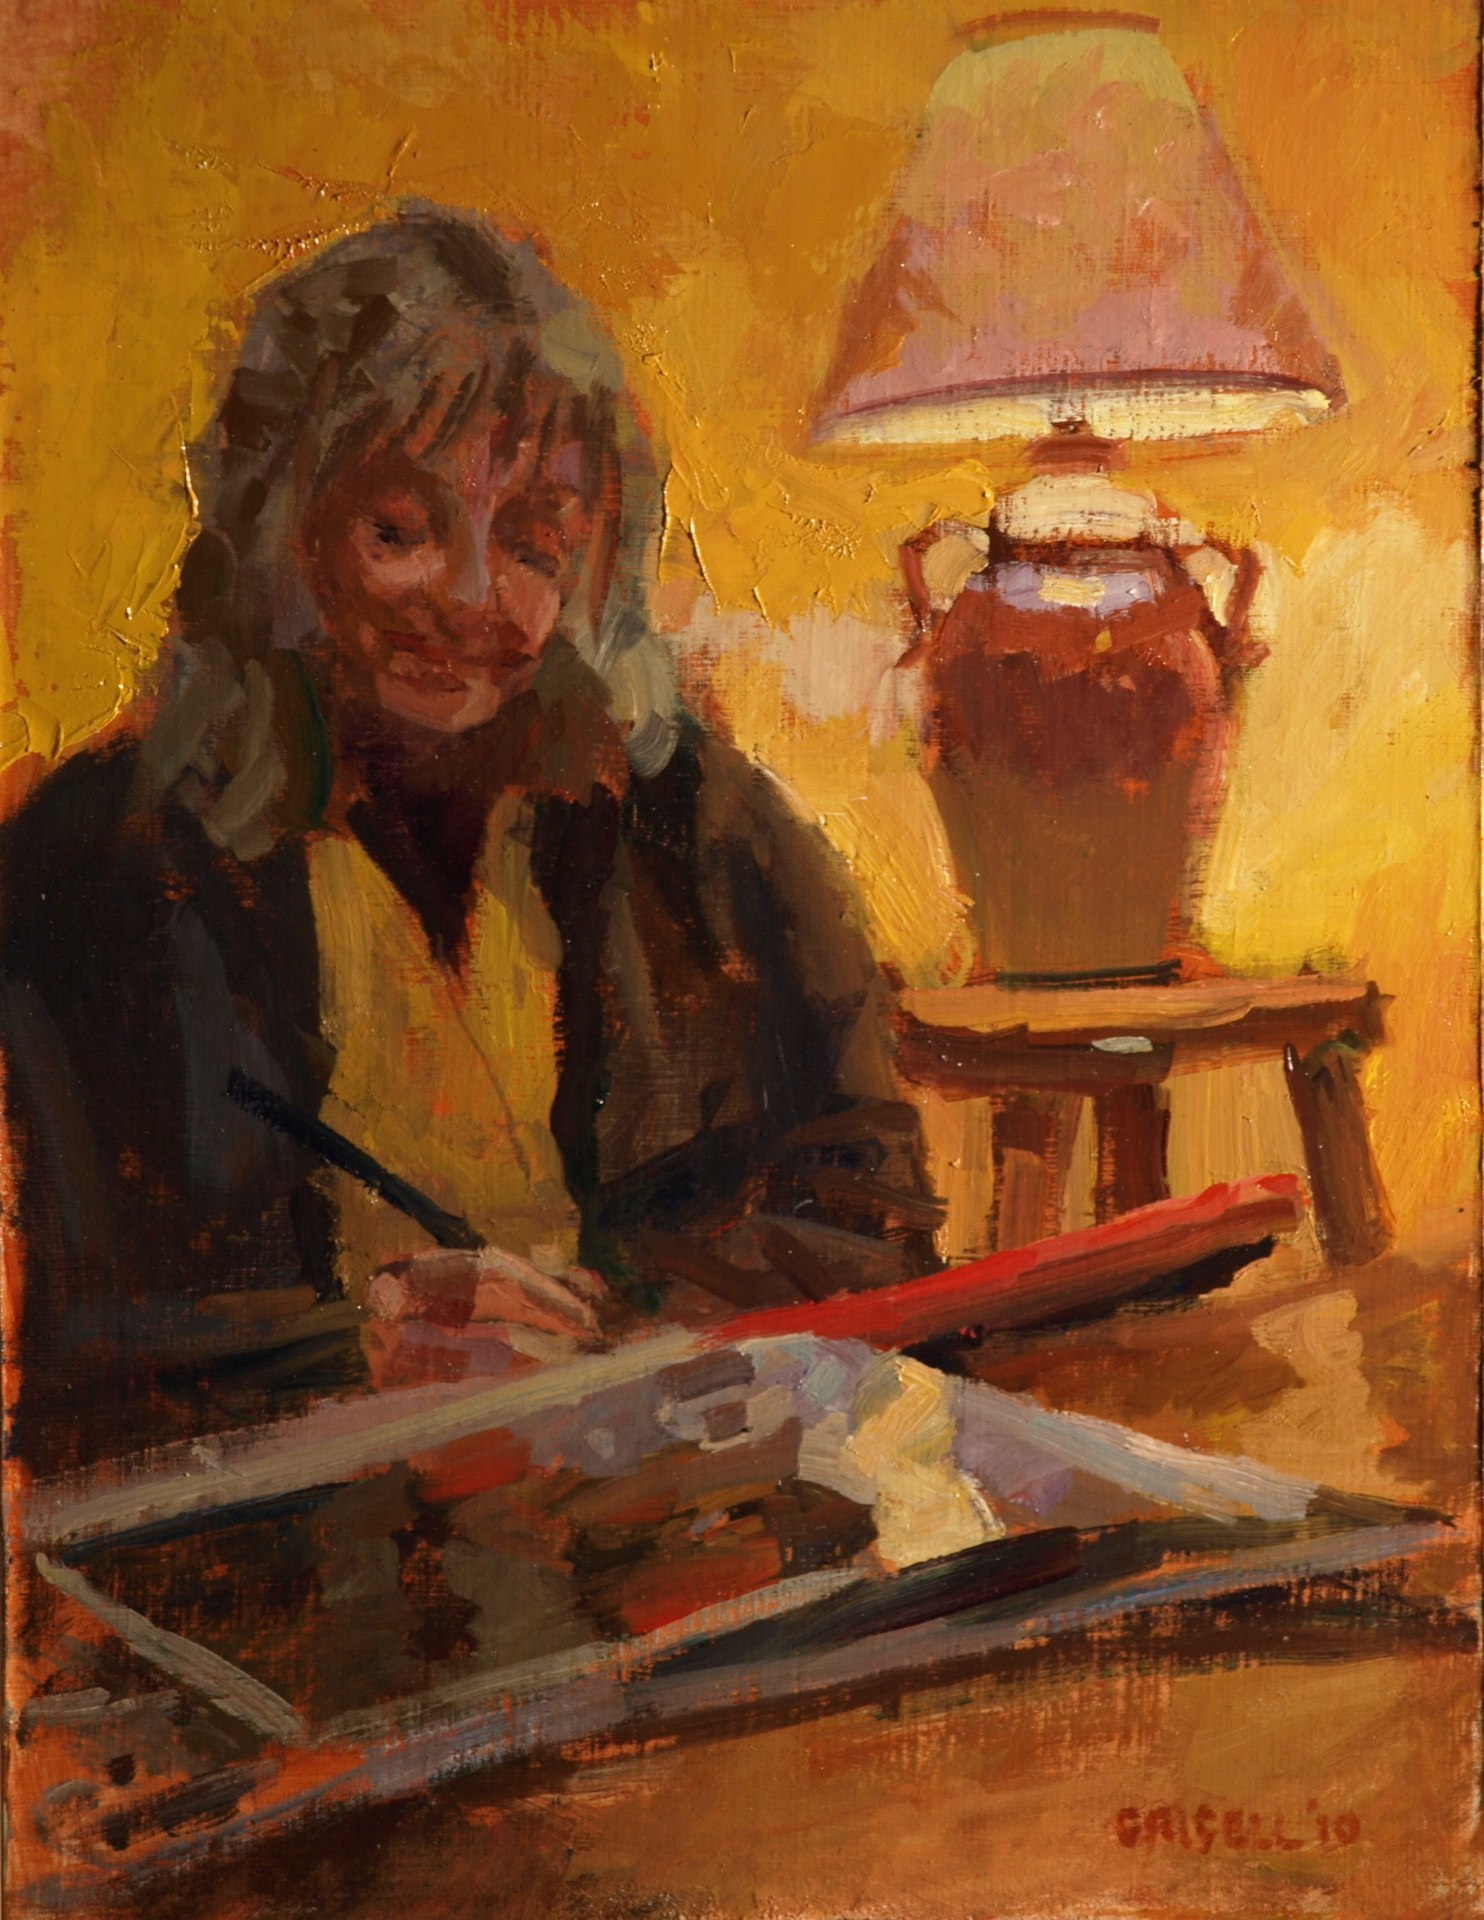 Sheila Sketching, Oil on Panel, 16 x 12 Inches, by Susan Grisell, $325